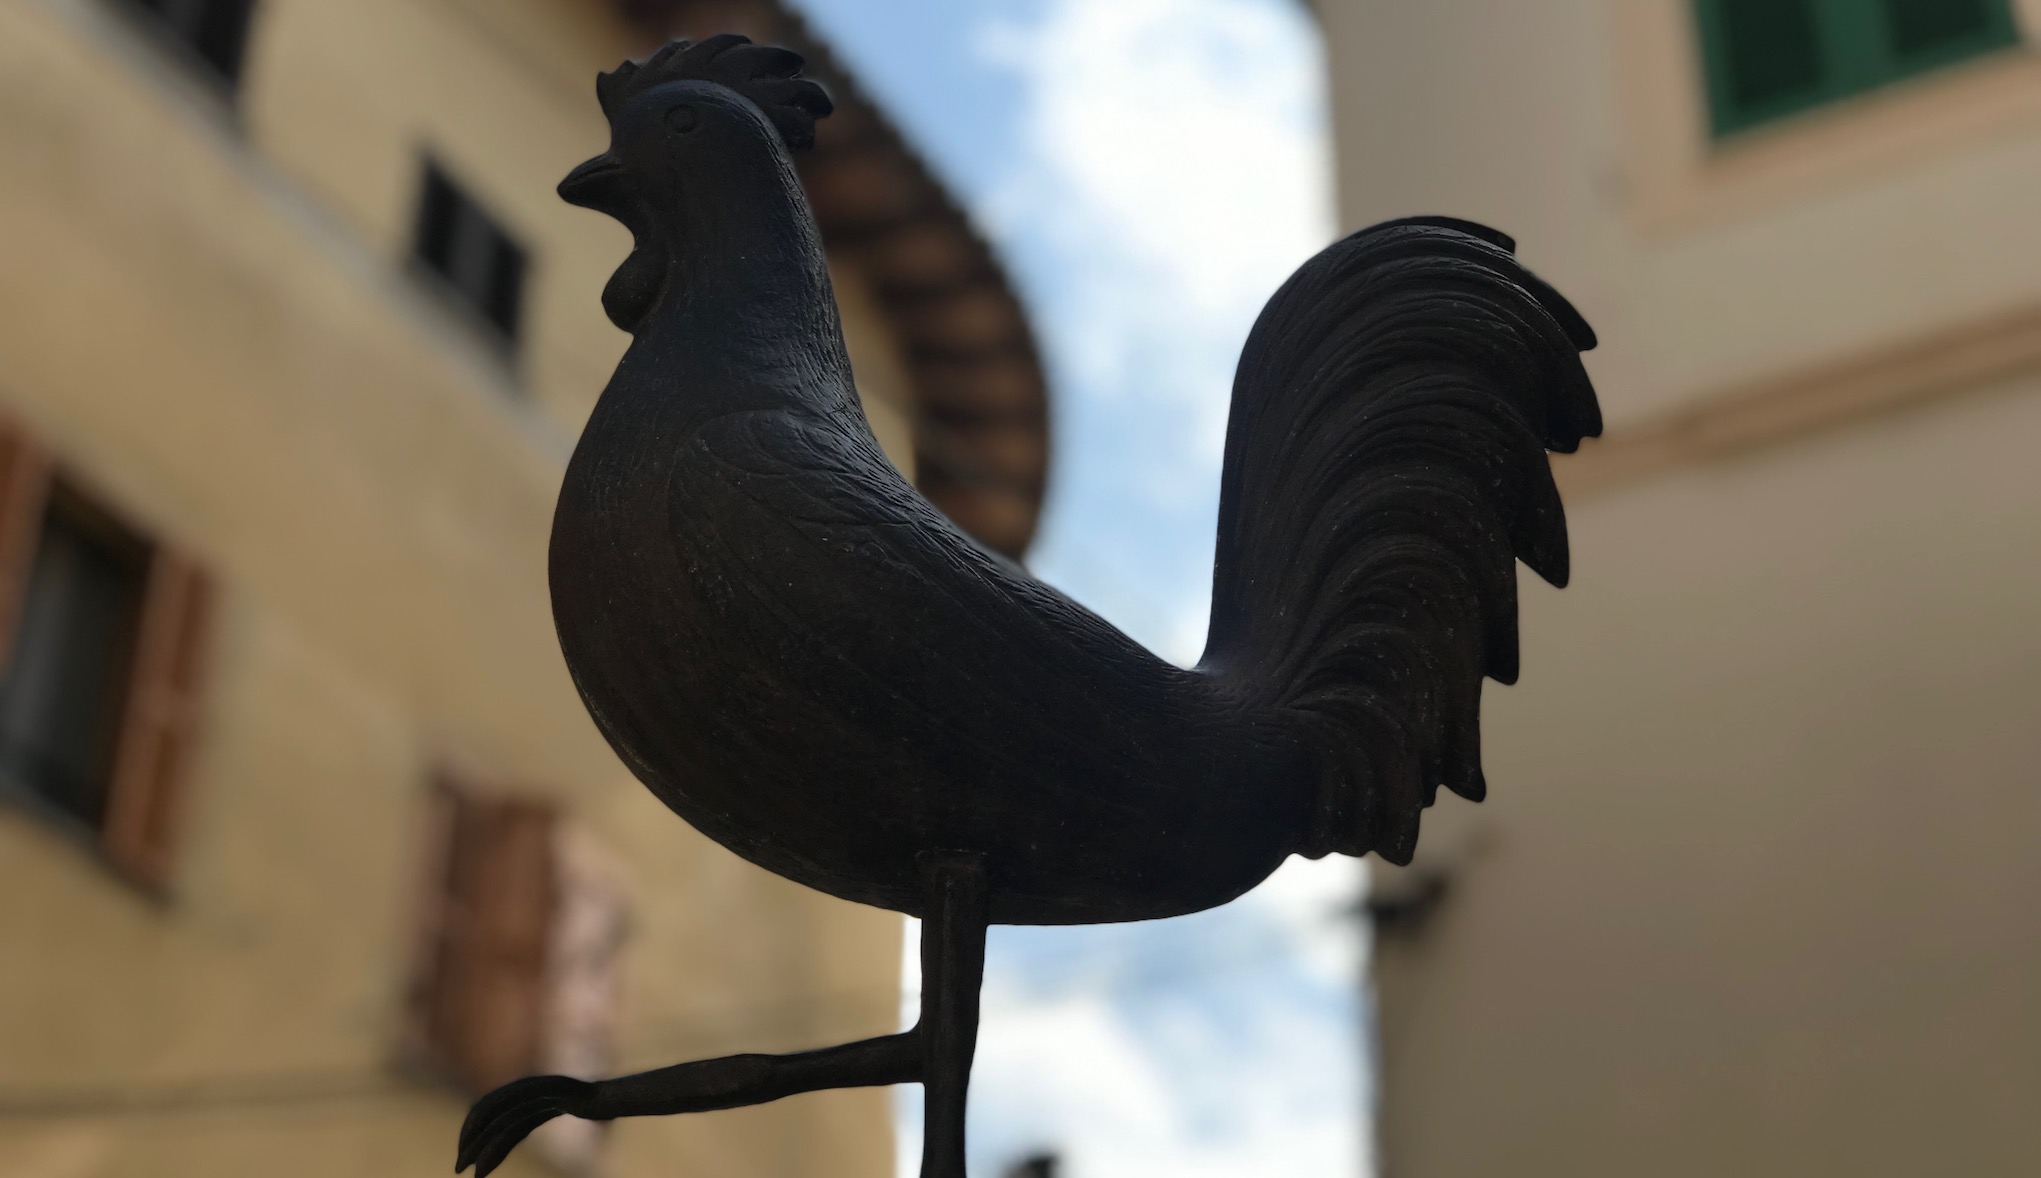 Gallo de Pollença